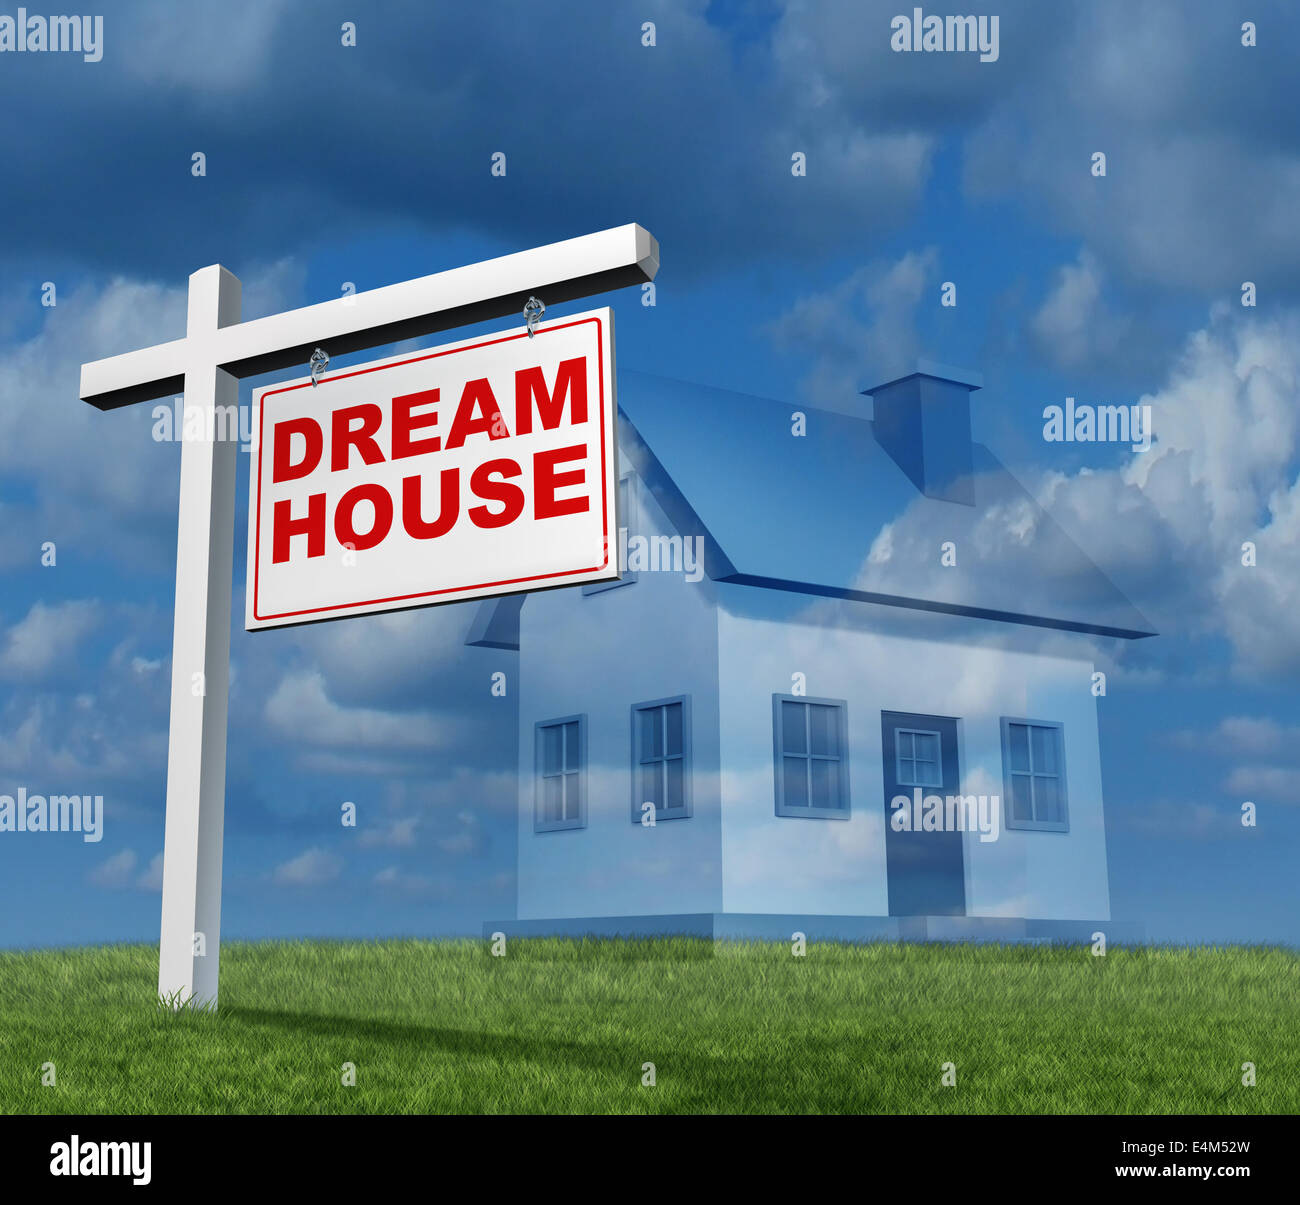 Dream house concept as a real estate sign with a single family home imaginationas a plan or aspiration for a  future - Stock Image